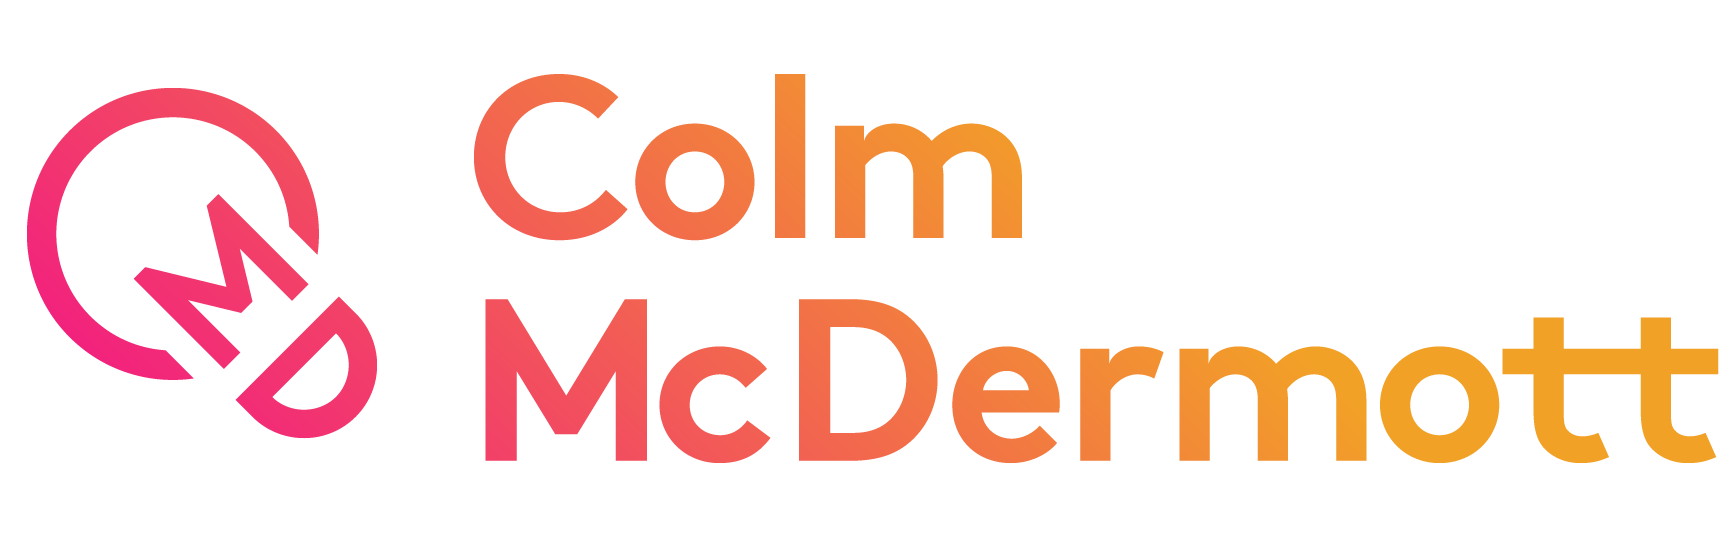 Colm McDermott